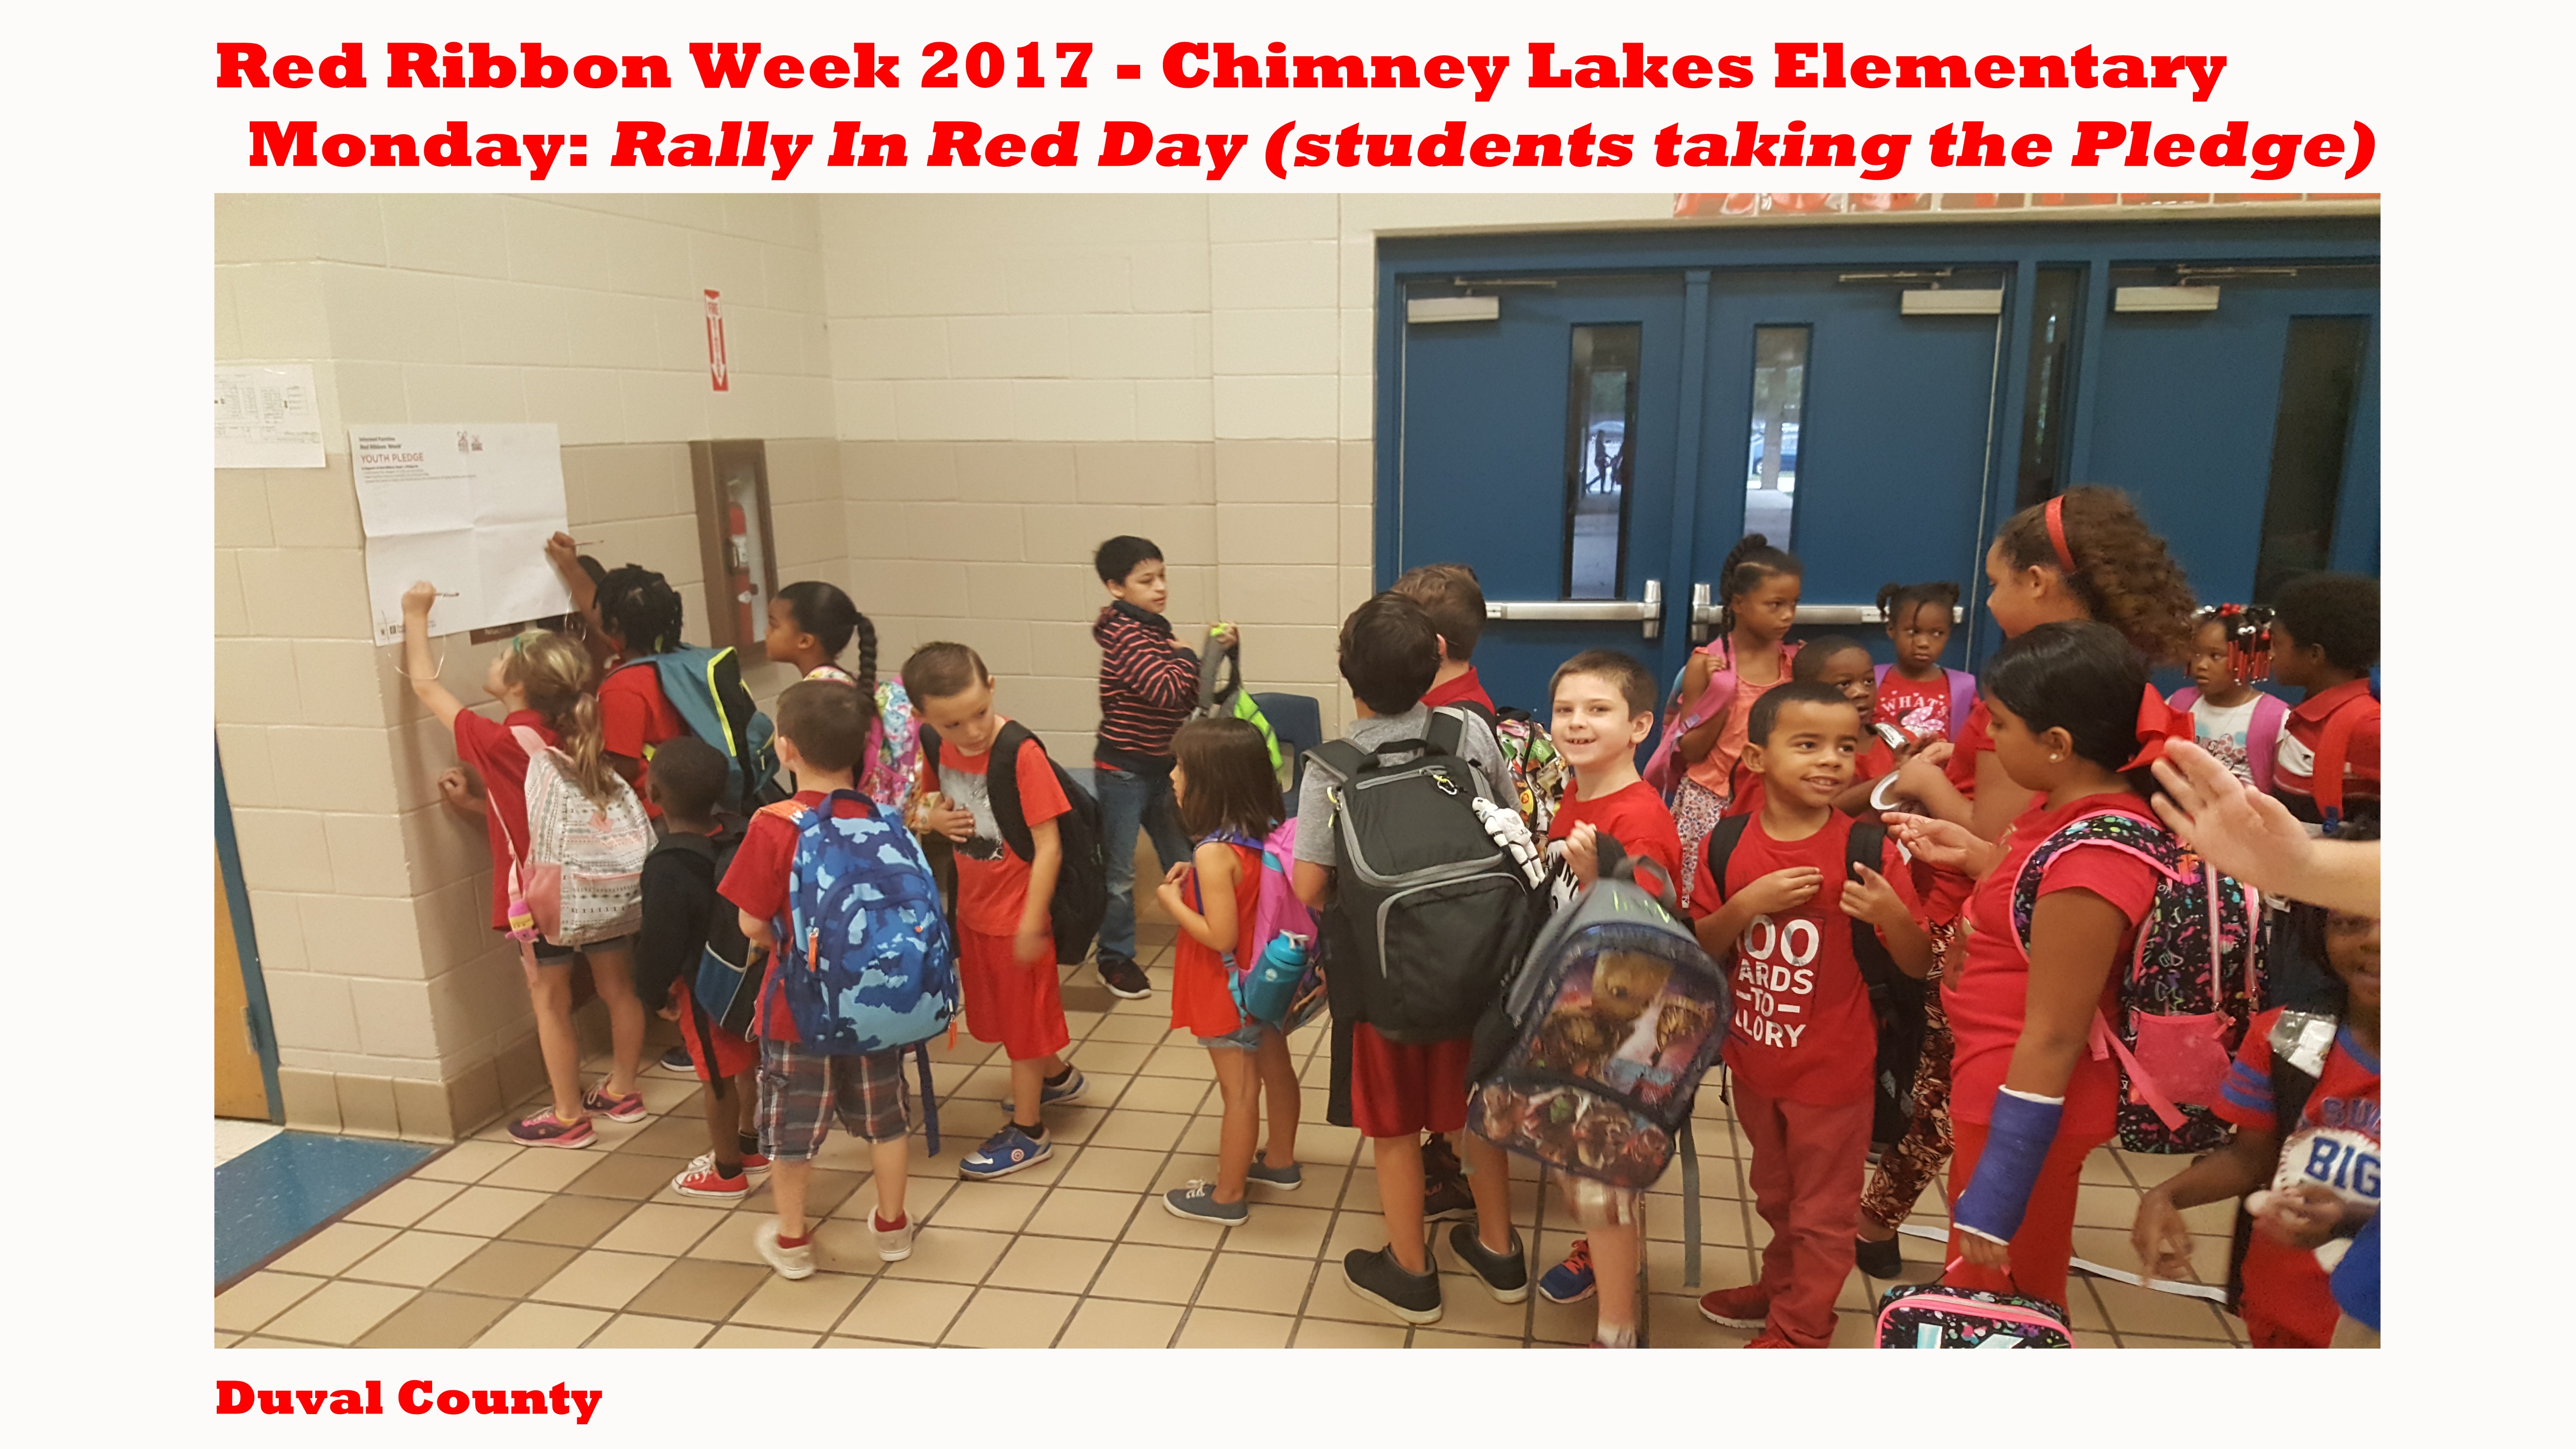 chimney lakes students taking the pledge and wearing red.png